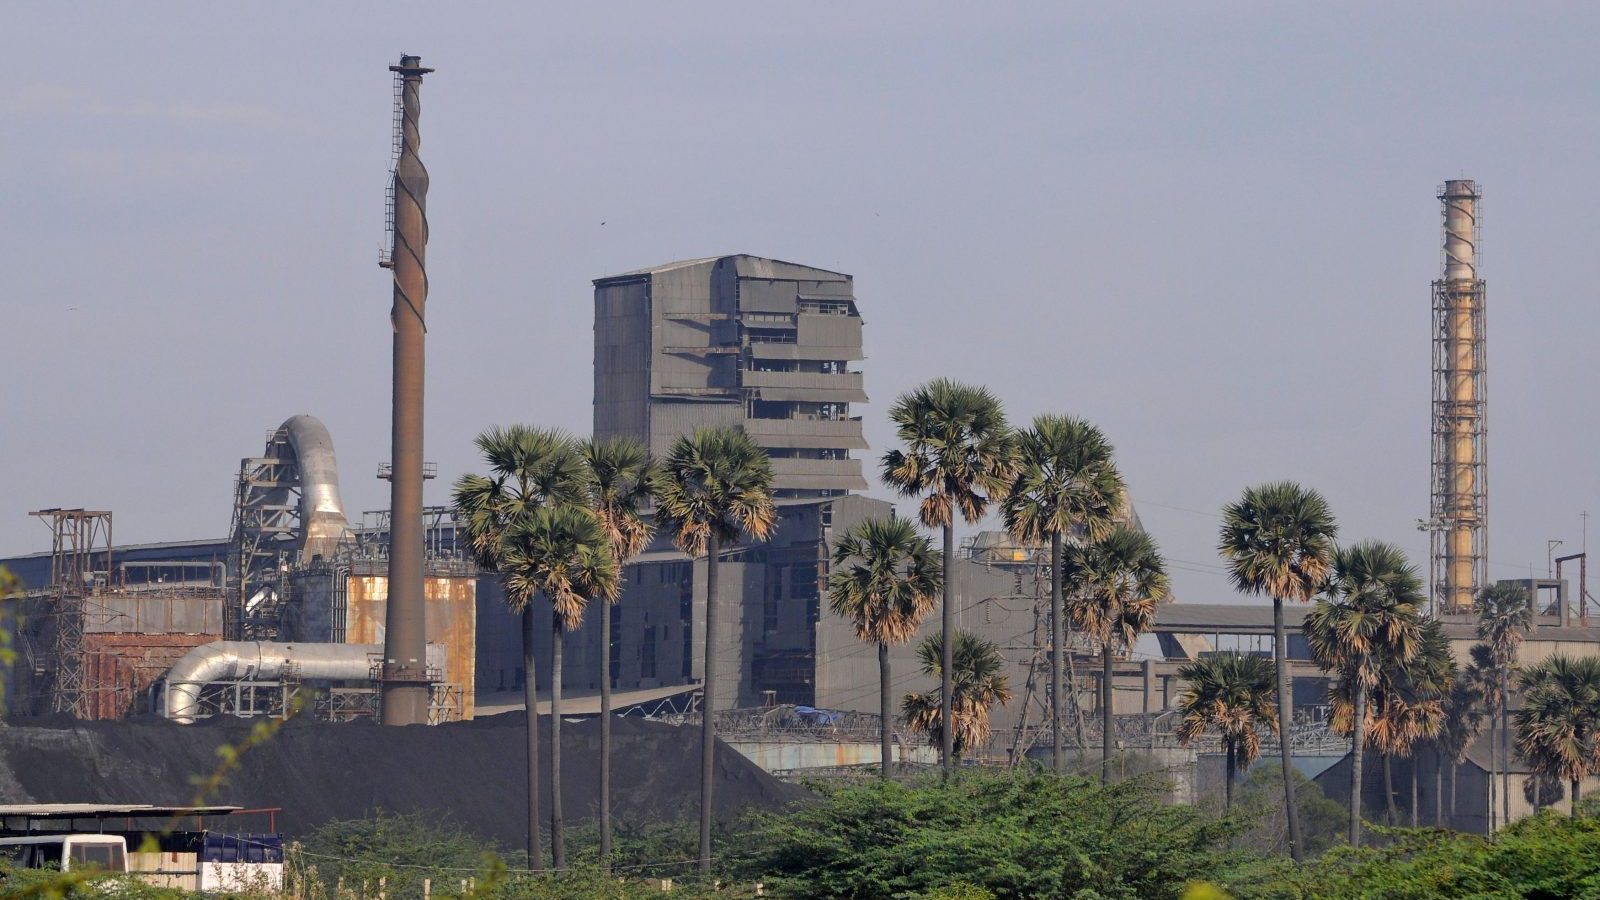 A general view shows Sterlite Industries Ltd's copper plant in Tuticorin, in the southern Indian state of Tamil Nadu April 5, 2013. Picture taken April 5, 2013. Sterlite Industries, a unit of London-based Vedanta Resources, which operates India's biggest copper smelter, which has been shut by authorities despite the firm denying its smelter was to blame for emissions in the area on March 23. Since opening in 1996, the plant has split the coastal city of Tuticorin between residents who say it is crucial for the local economy and farmers and fishermen who see it as a health hazard. Similar debates are playing out across India where disputes over safety, the environment and livelihoods overshadow the efforts of Asia's third-largest economy to industrialize.  To match INDIA-STERLITE/TOWN     REUTERS/Stringer (INDIA - Tags: ENVIRONMENT BUSINESS) - GM1E94912KX01